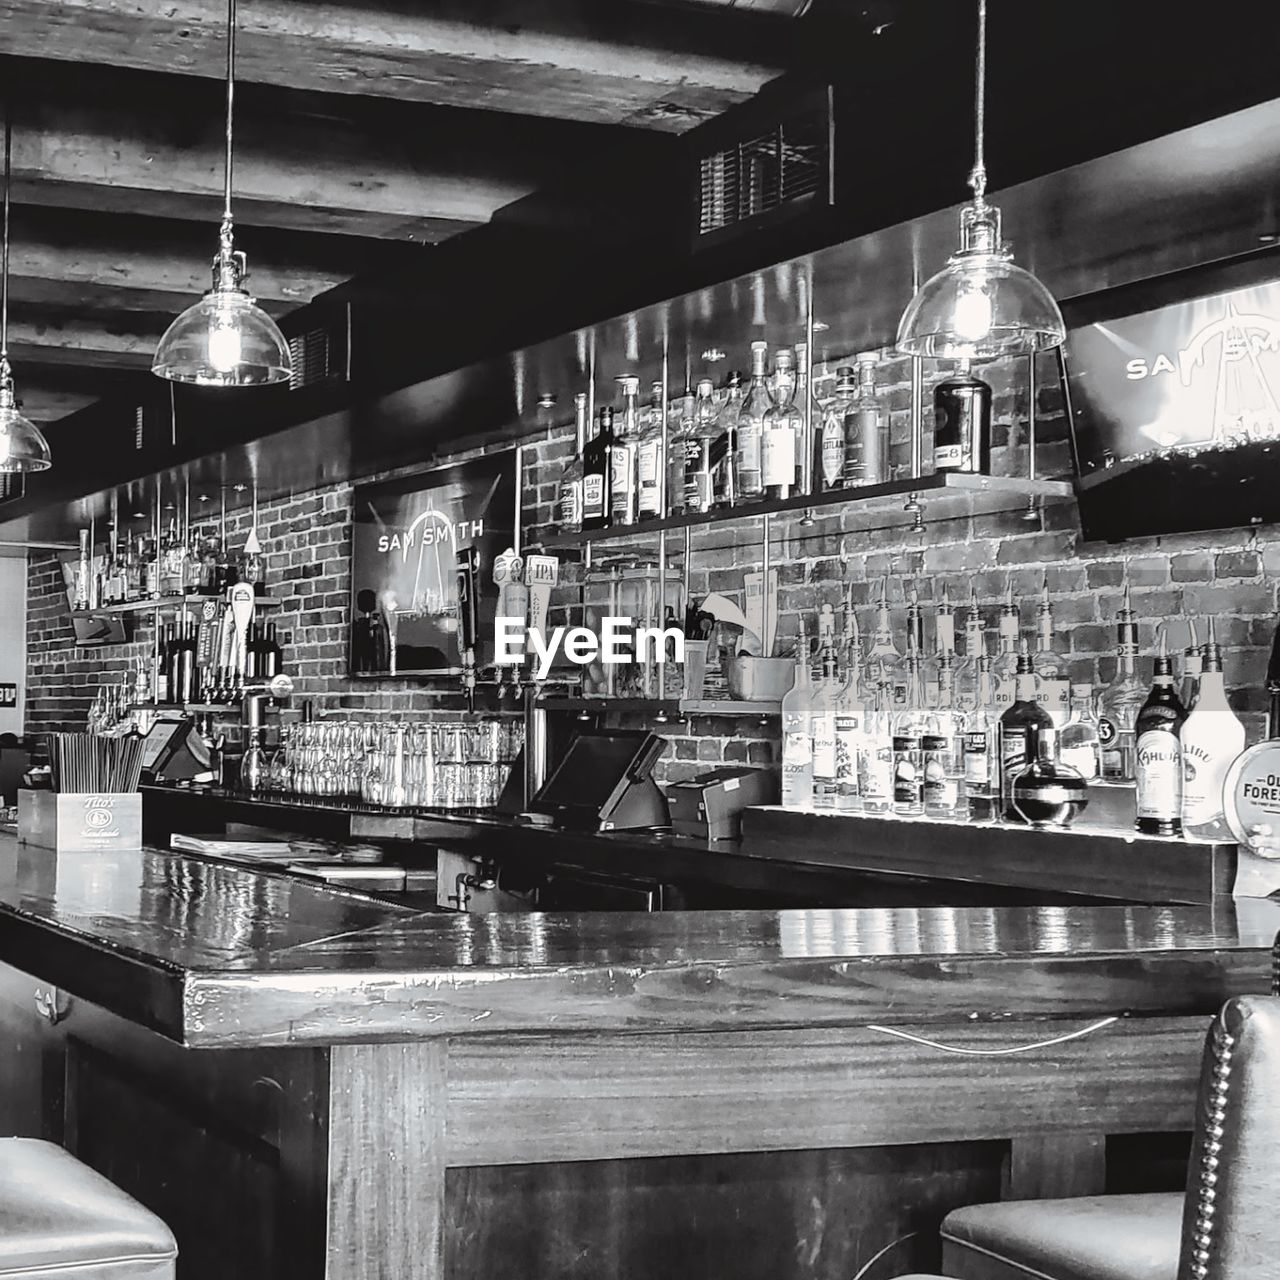 bar - drink establishment, restaurant, food and drink, business, bar counter, indoors, table, drink, refreshment, incidental people, illuminated, adult, lighting equipment, real people, men, sitting, container, people, group, group of people, bartender